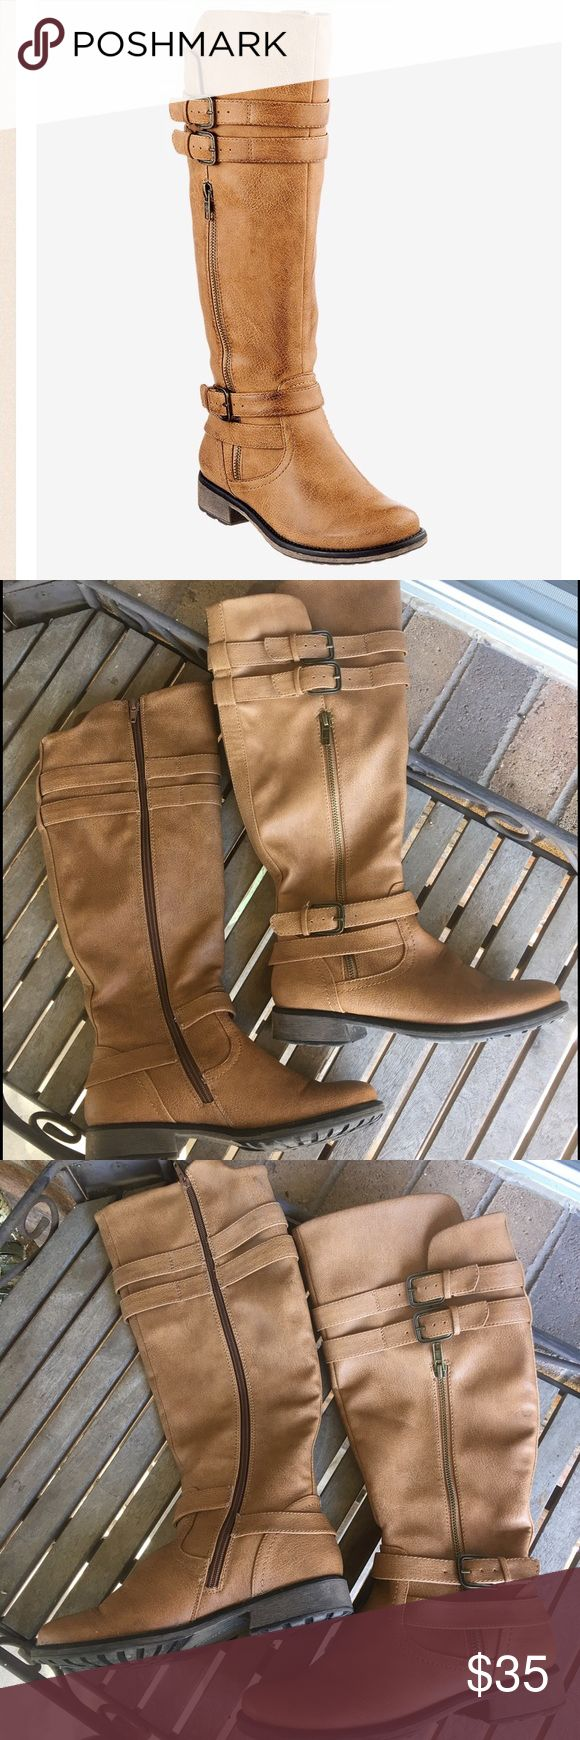 "Bare Traps Sheela Light Tan Riding Boots Gorgeous boots in great condition! Very versatile and stylish. All man made materials with rubber soles. Inside zipper. 3/4"" heel. Buckle straps. Calf width 15"". Great neutral color. Bare Traps Shoes Winter & Rain Boots"